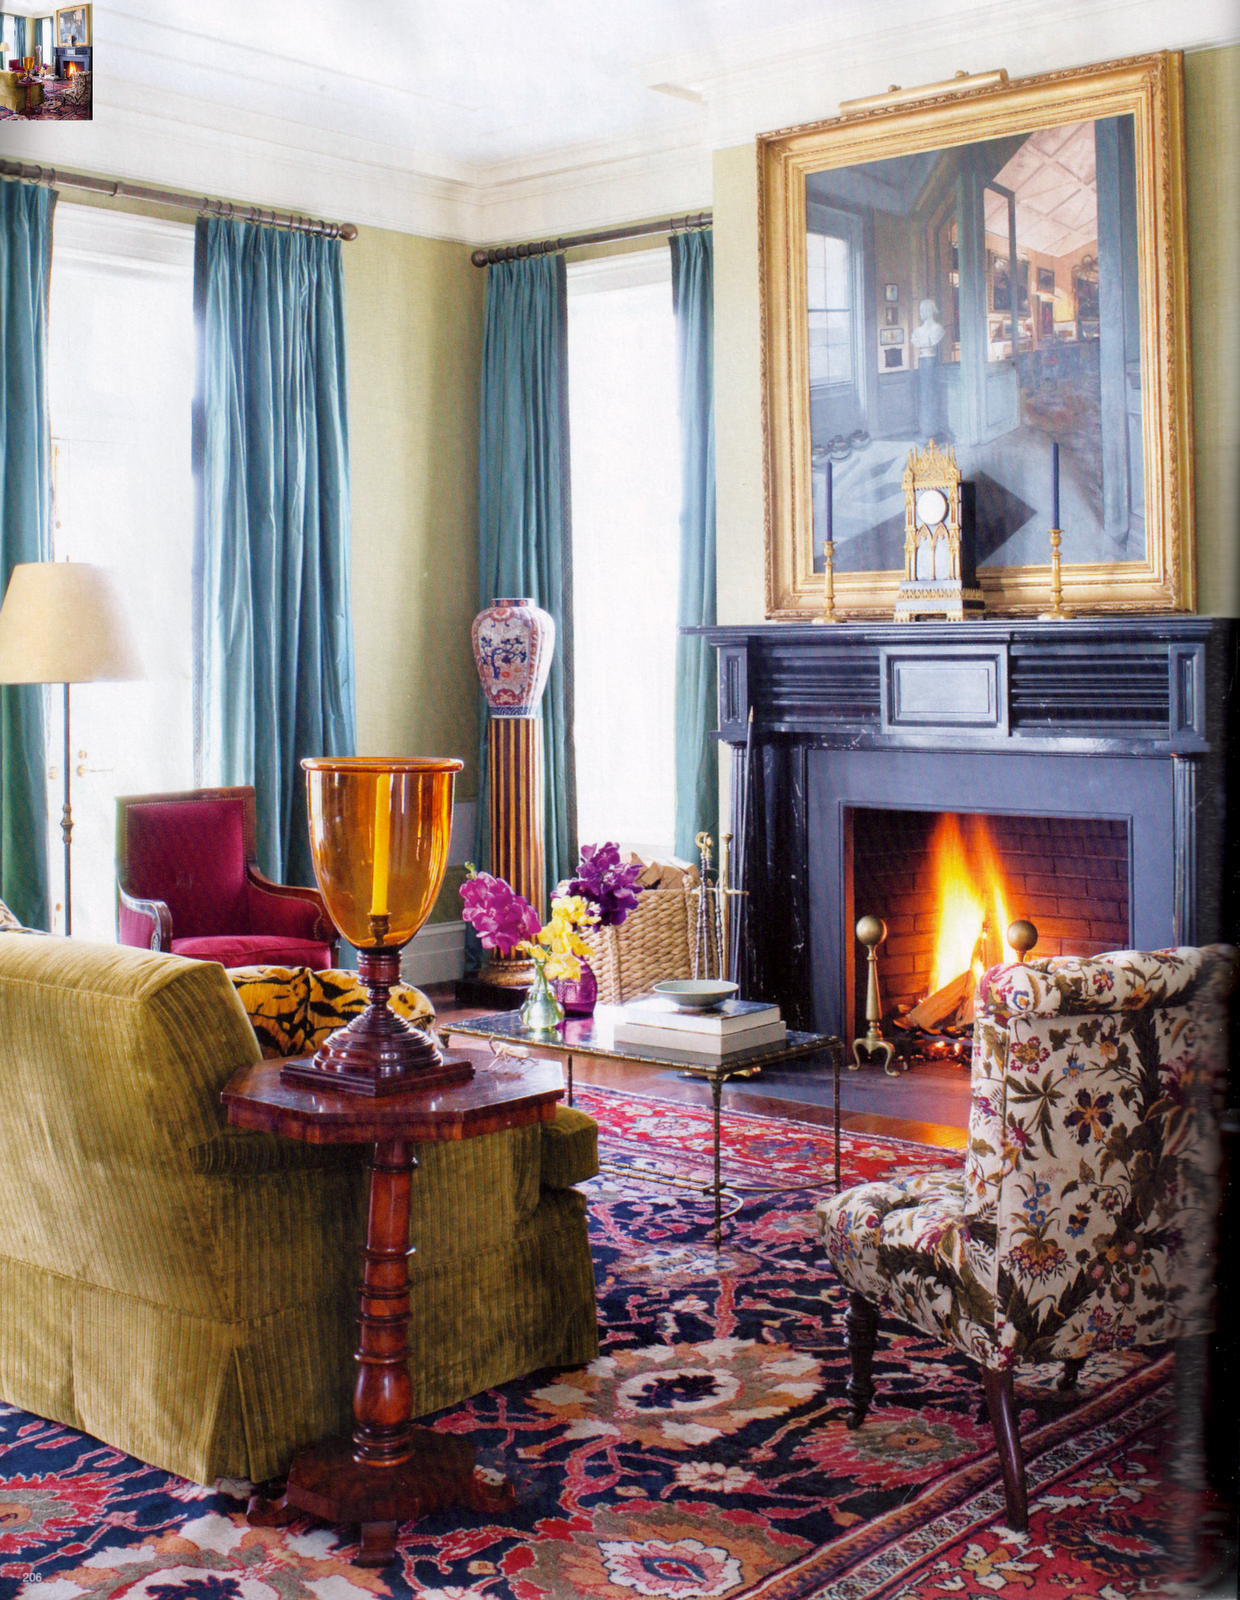 Us Interior Designs Jacques Grange: US Interior Designs: MILES REDD AND GIL SCHAFER IN NEW YORK